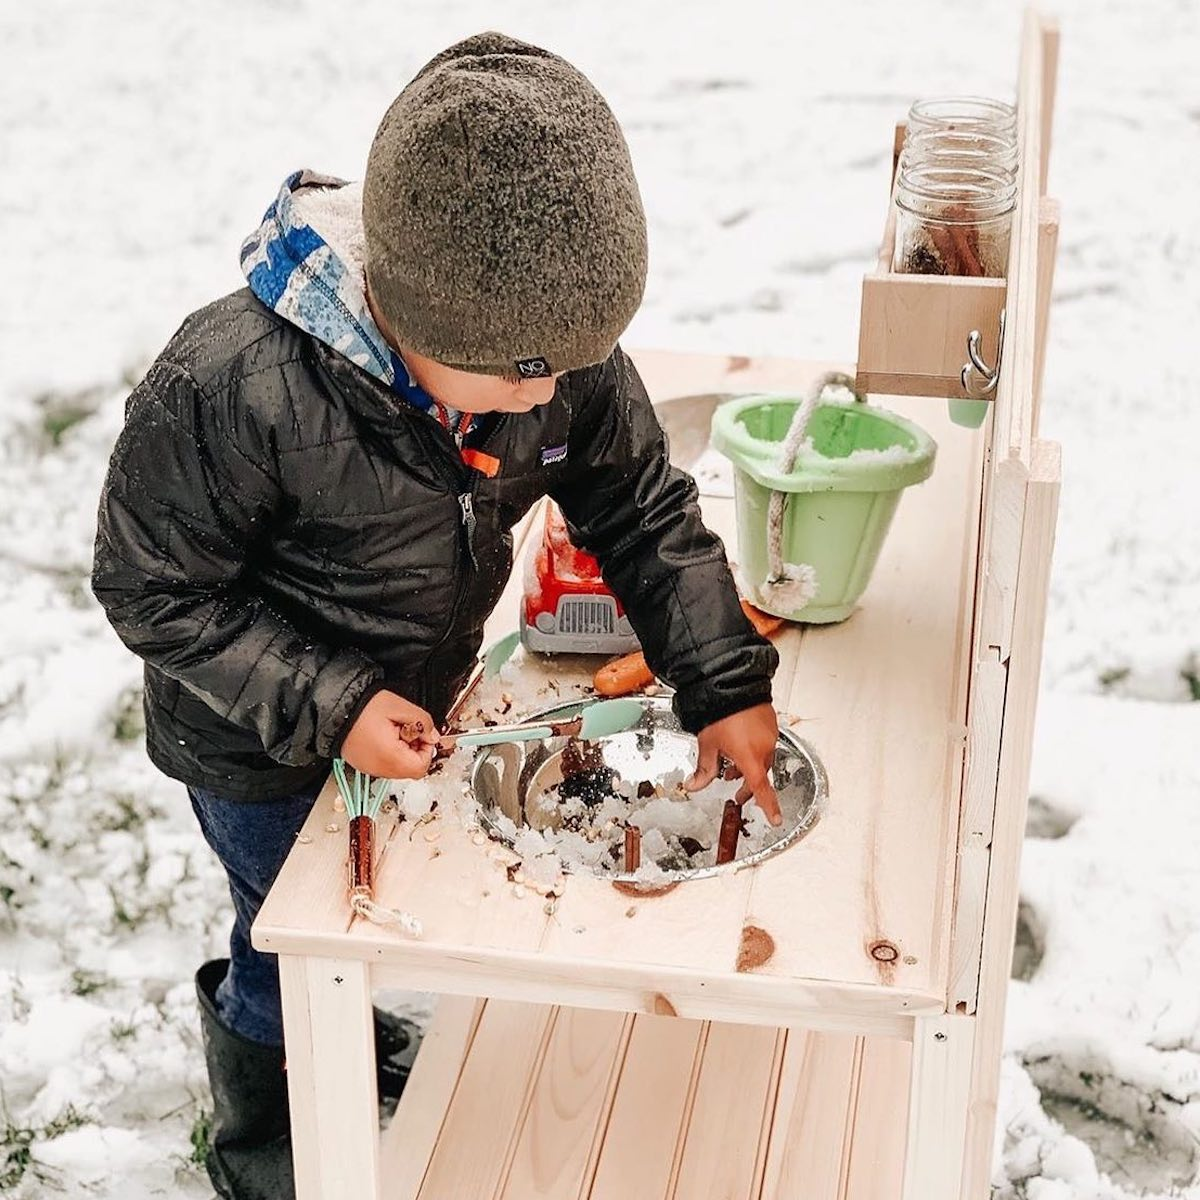 A little boy playing with The Monarch Studio mud kitchen outside in the snow